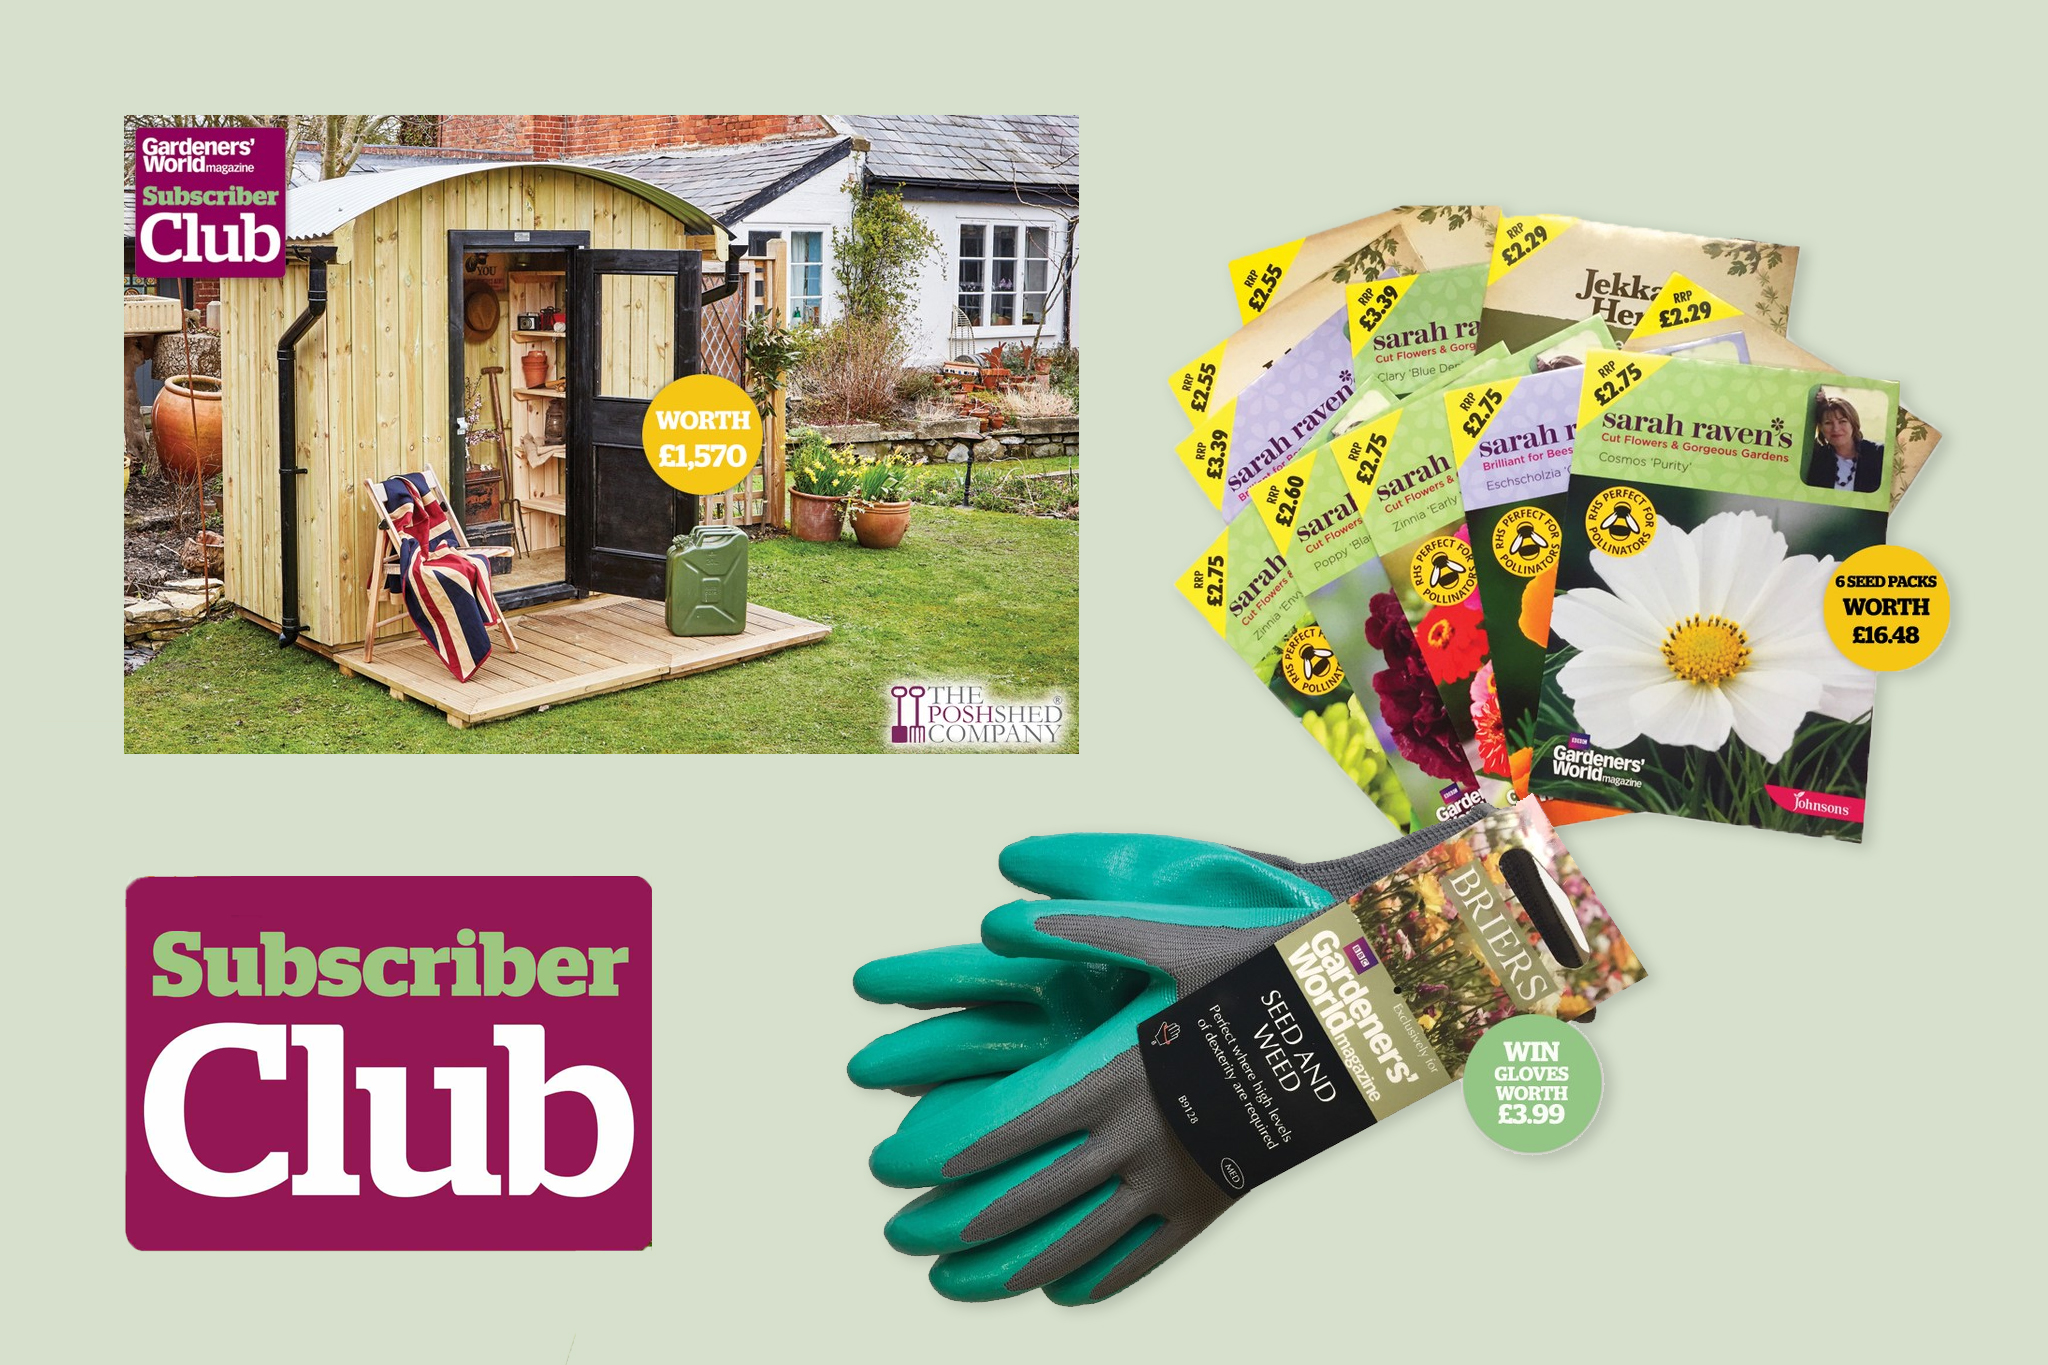 BBC Gardeners' World Magazine exclusive, subscriber-only competitions